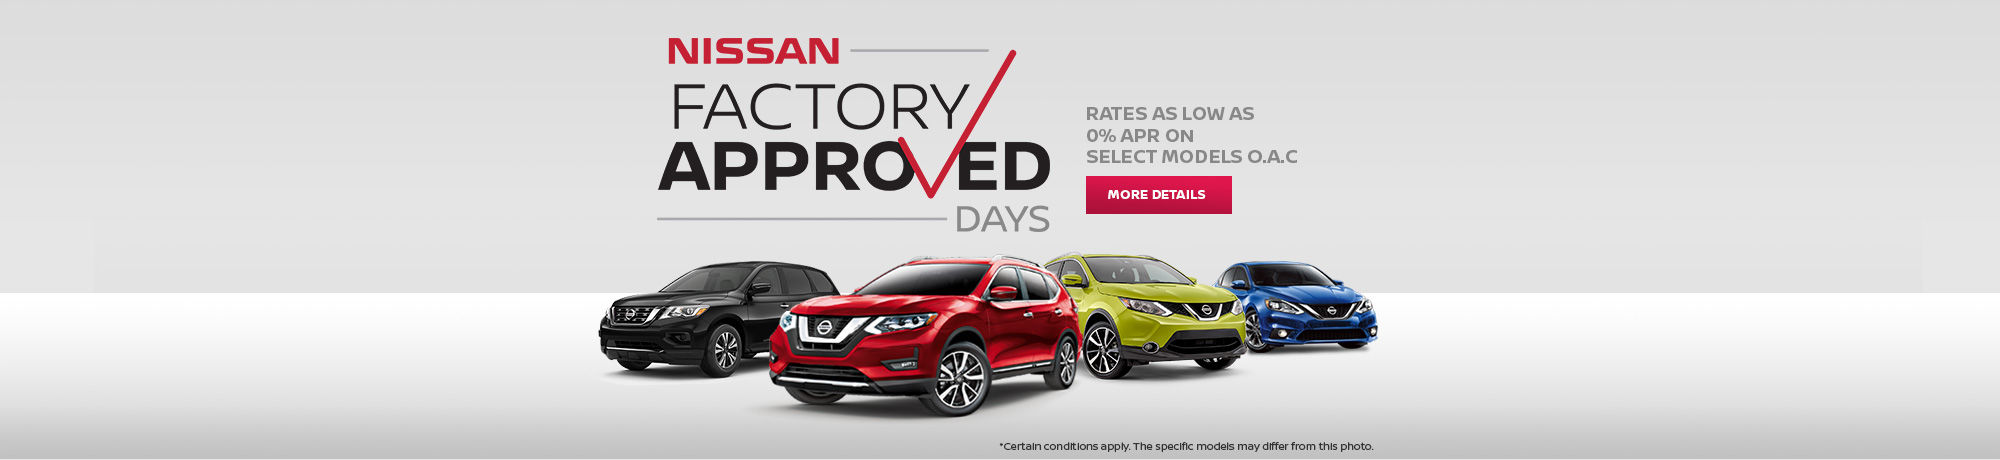 Nissan Factory Approved Days Event